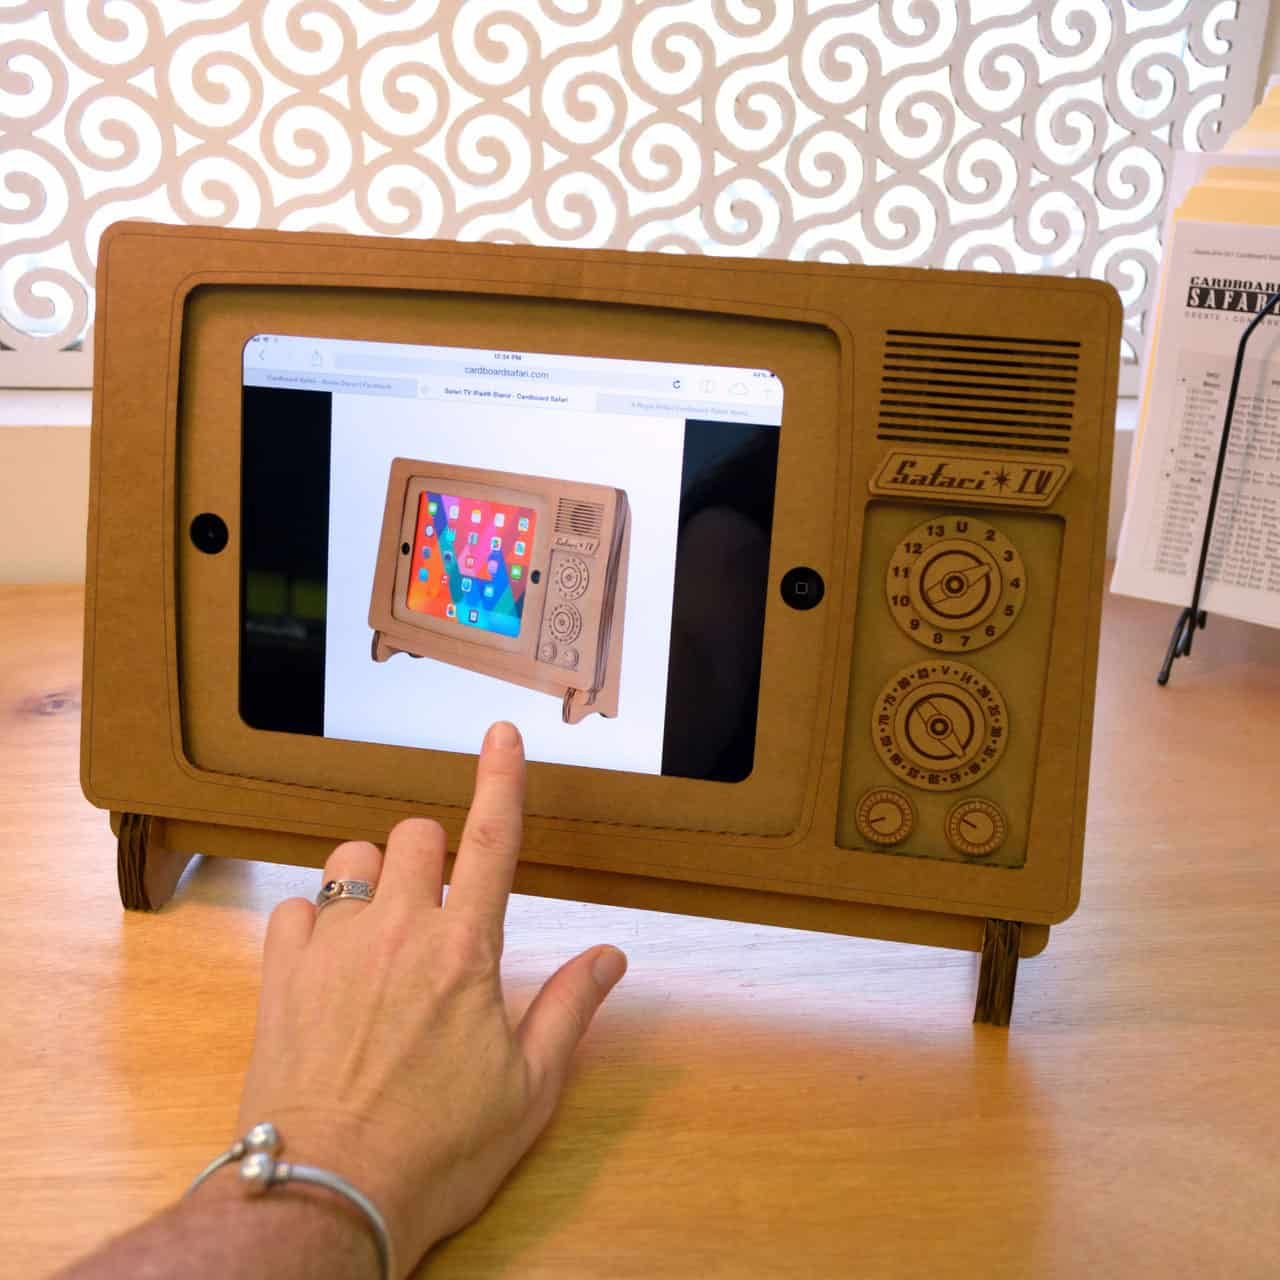 It's not real tablet entertainment if it's not on a card board TV stand.